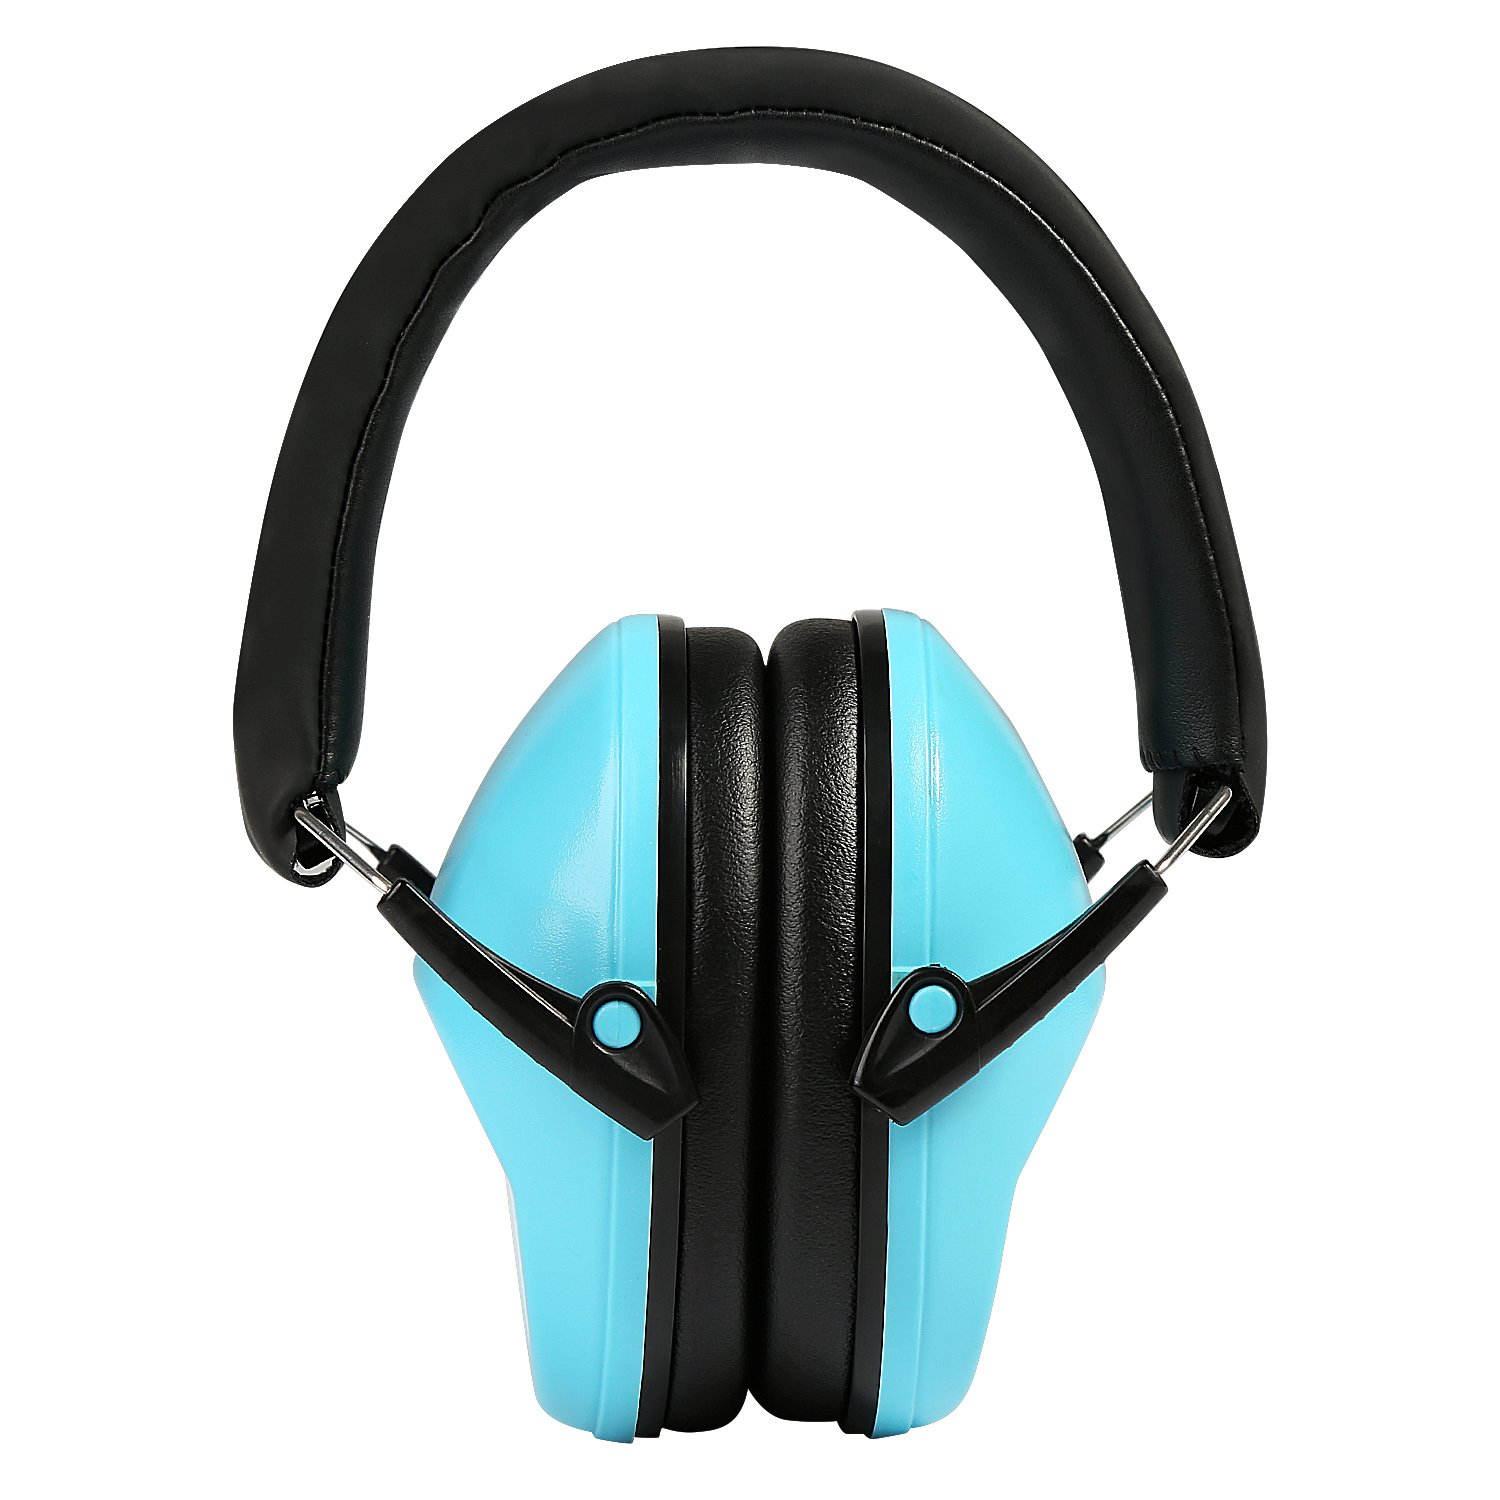 NEWSTYLE Kids Ear Protection Defenders Hearing Protectors Earmuffs Noise Protection for Shooting Studying Hunting Adjustable Headband for Children Infants Small Adults Women (Blue)